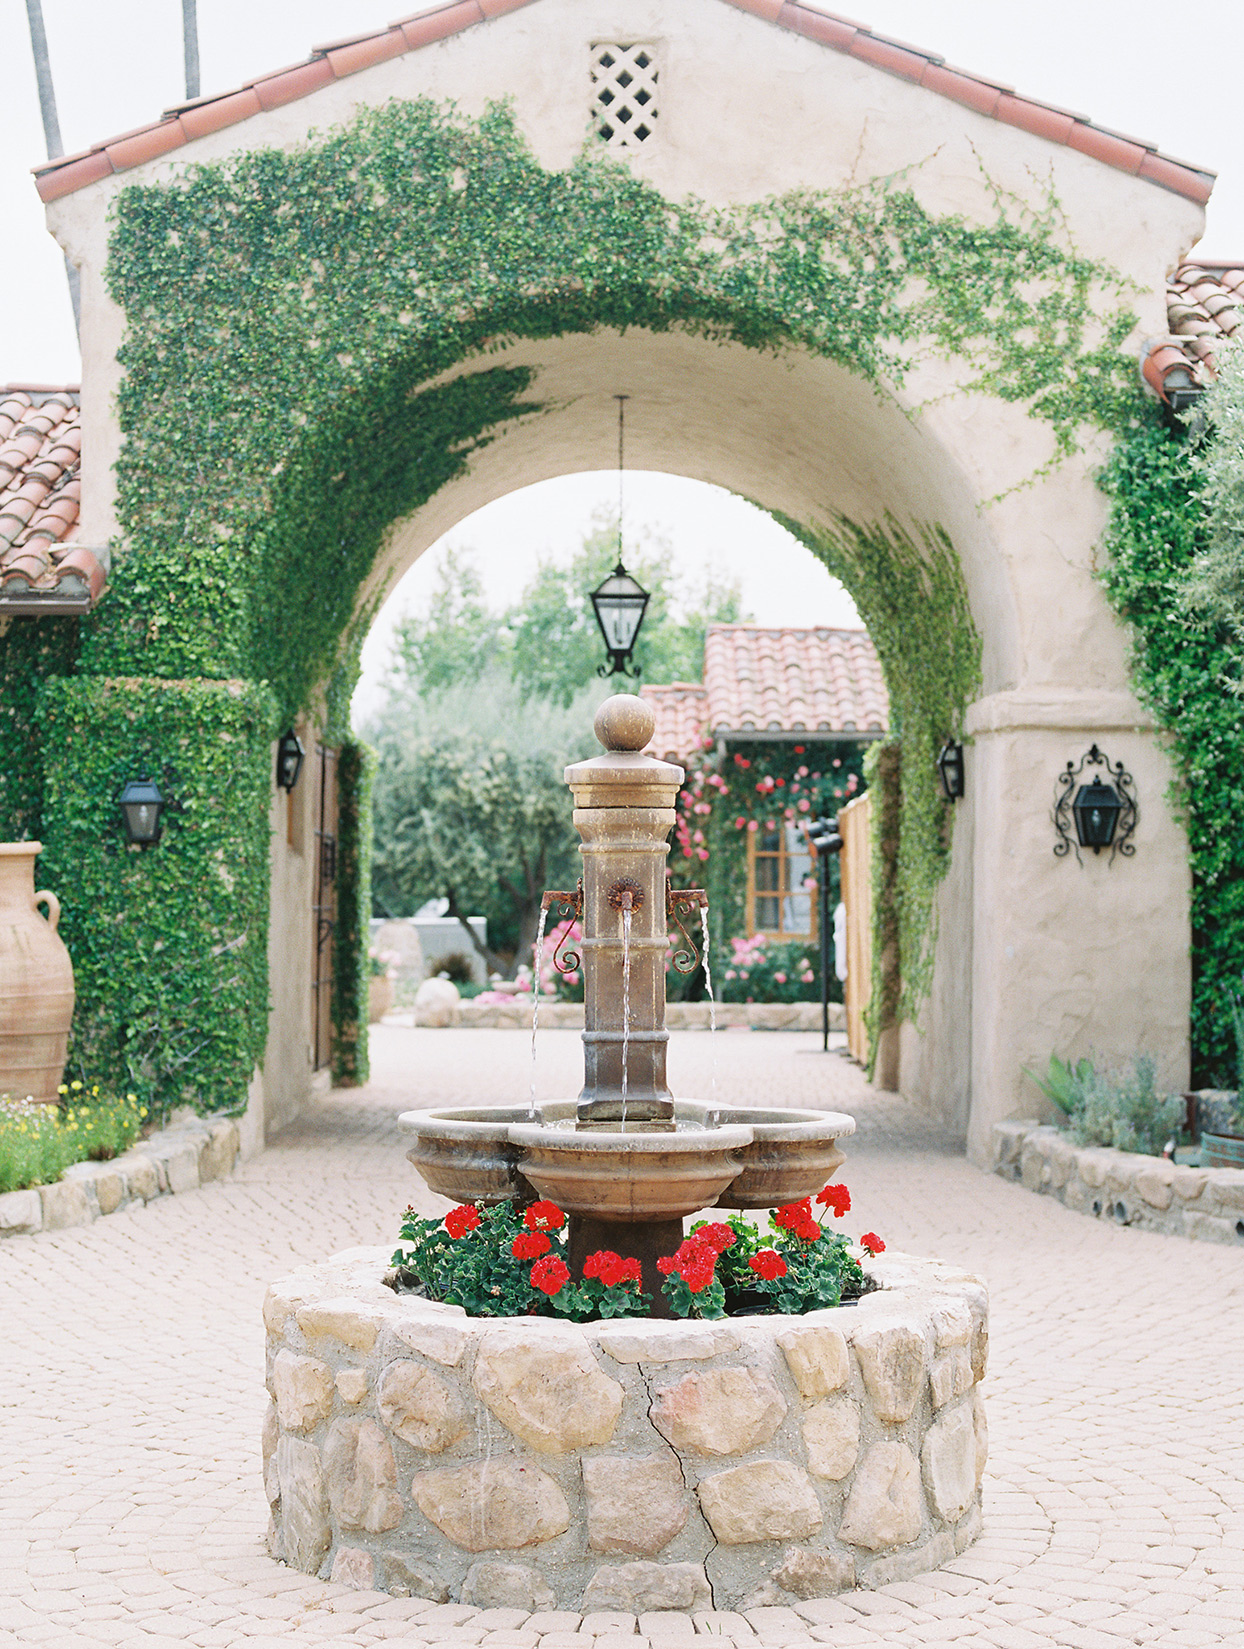 raina salih wedding courtyard fountain